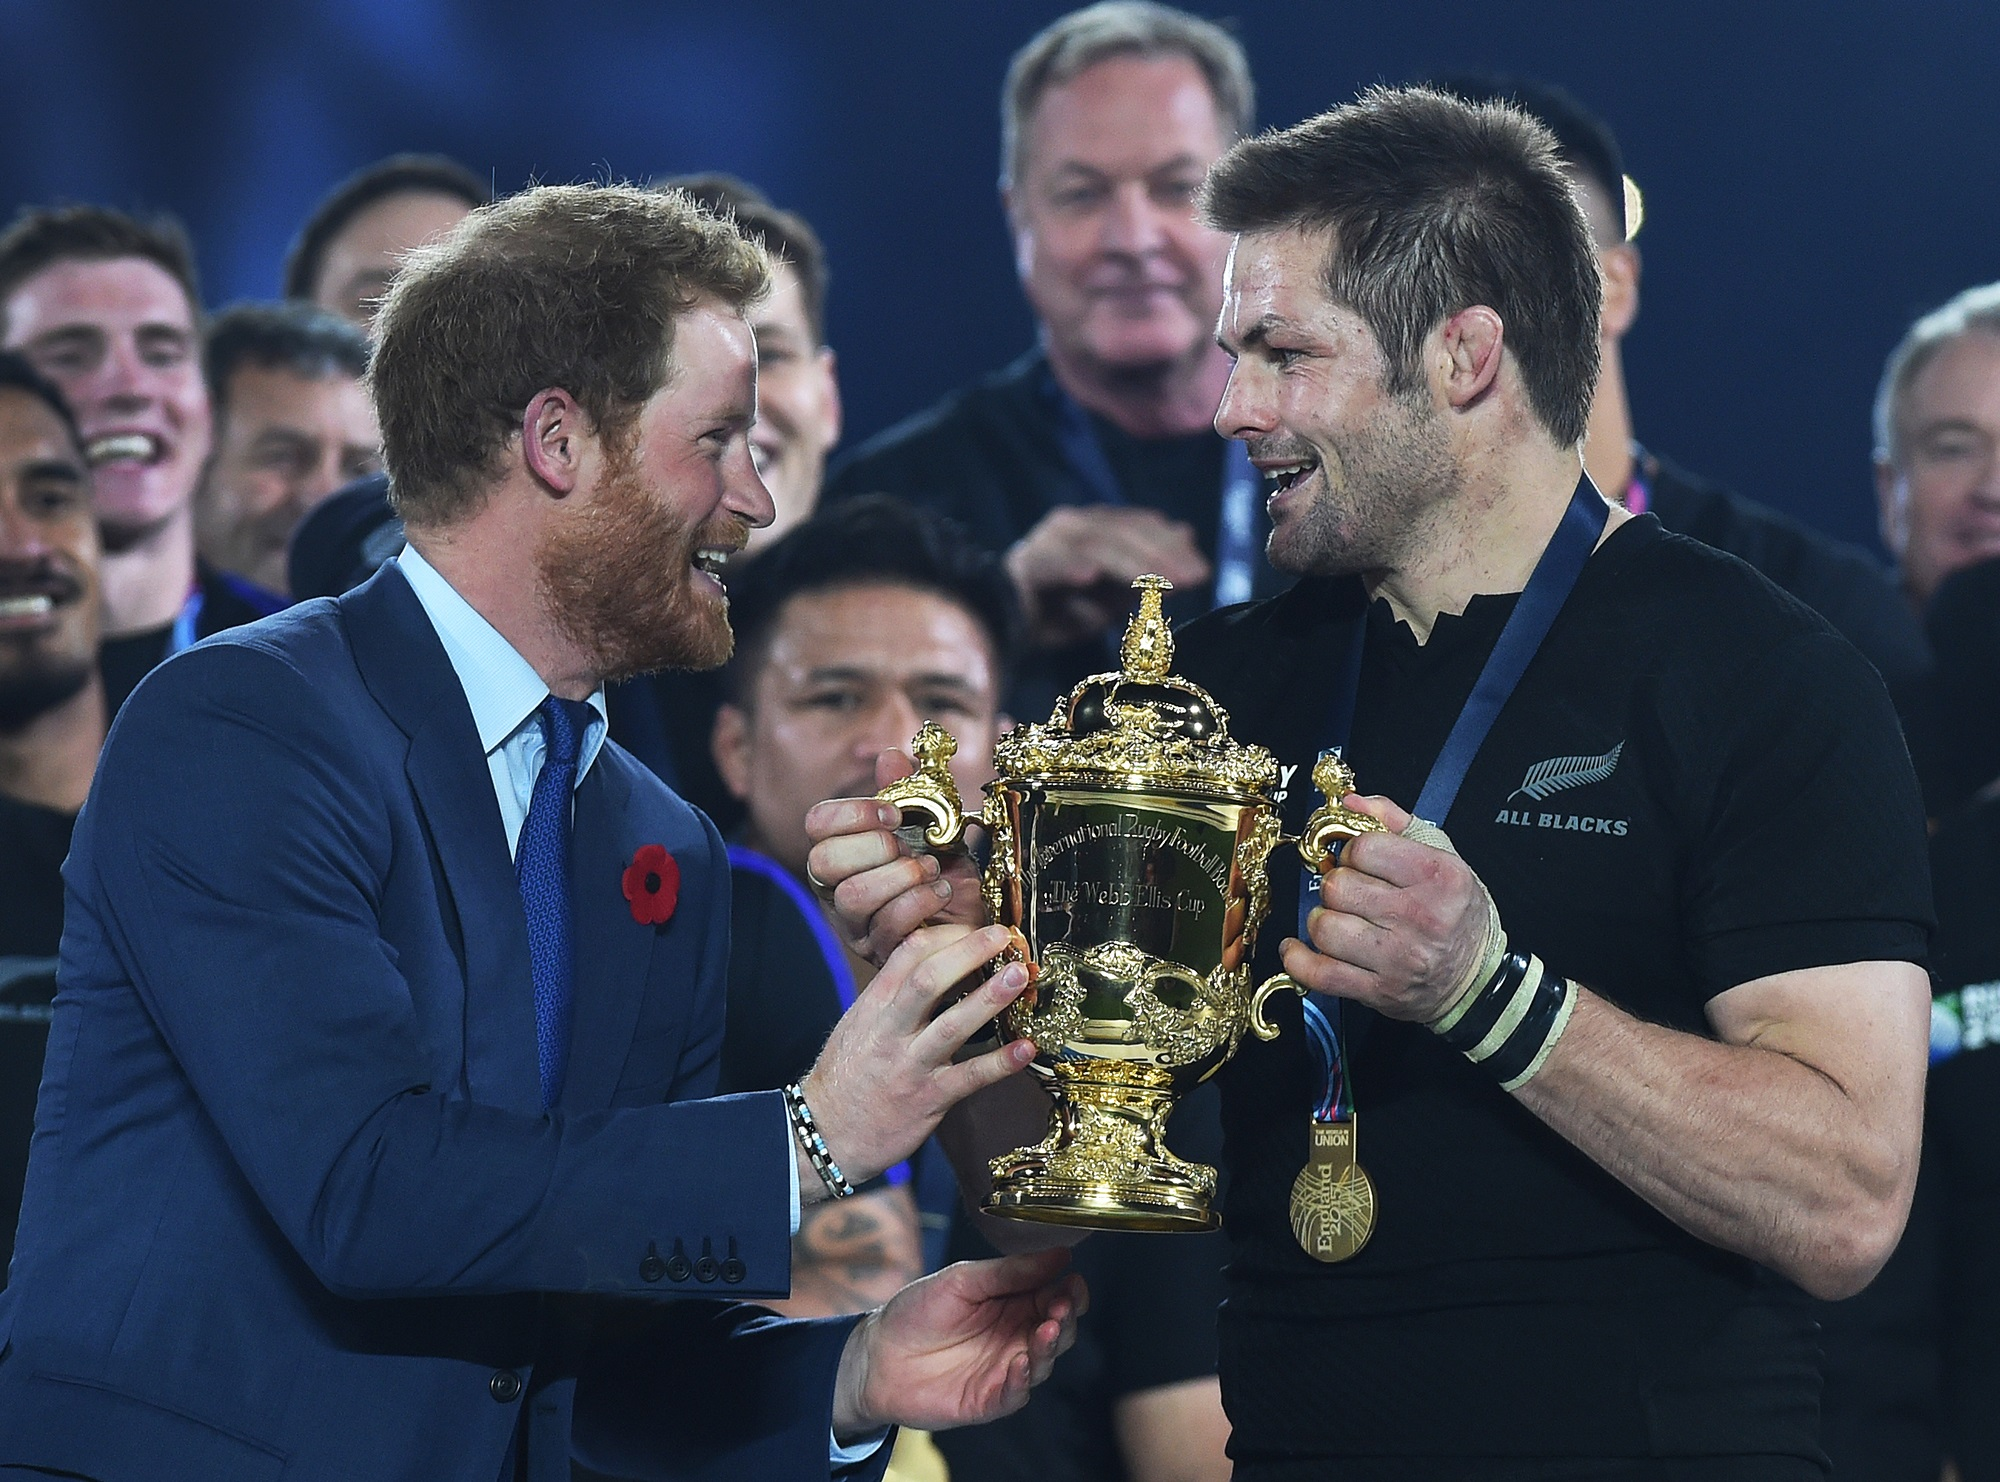 Prince Harry and Richie McCaw - Rugby World Cup Final 2015